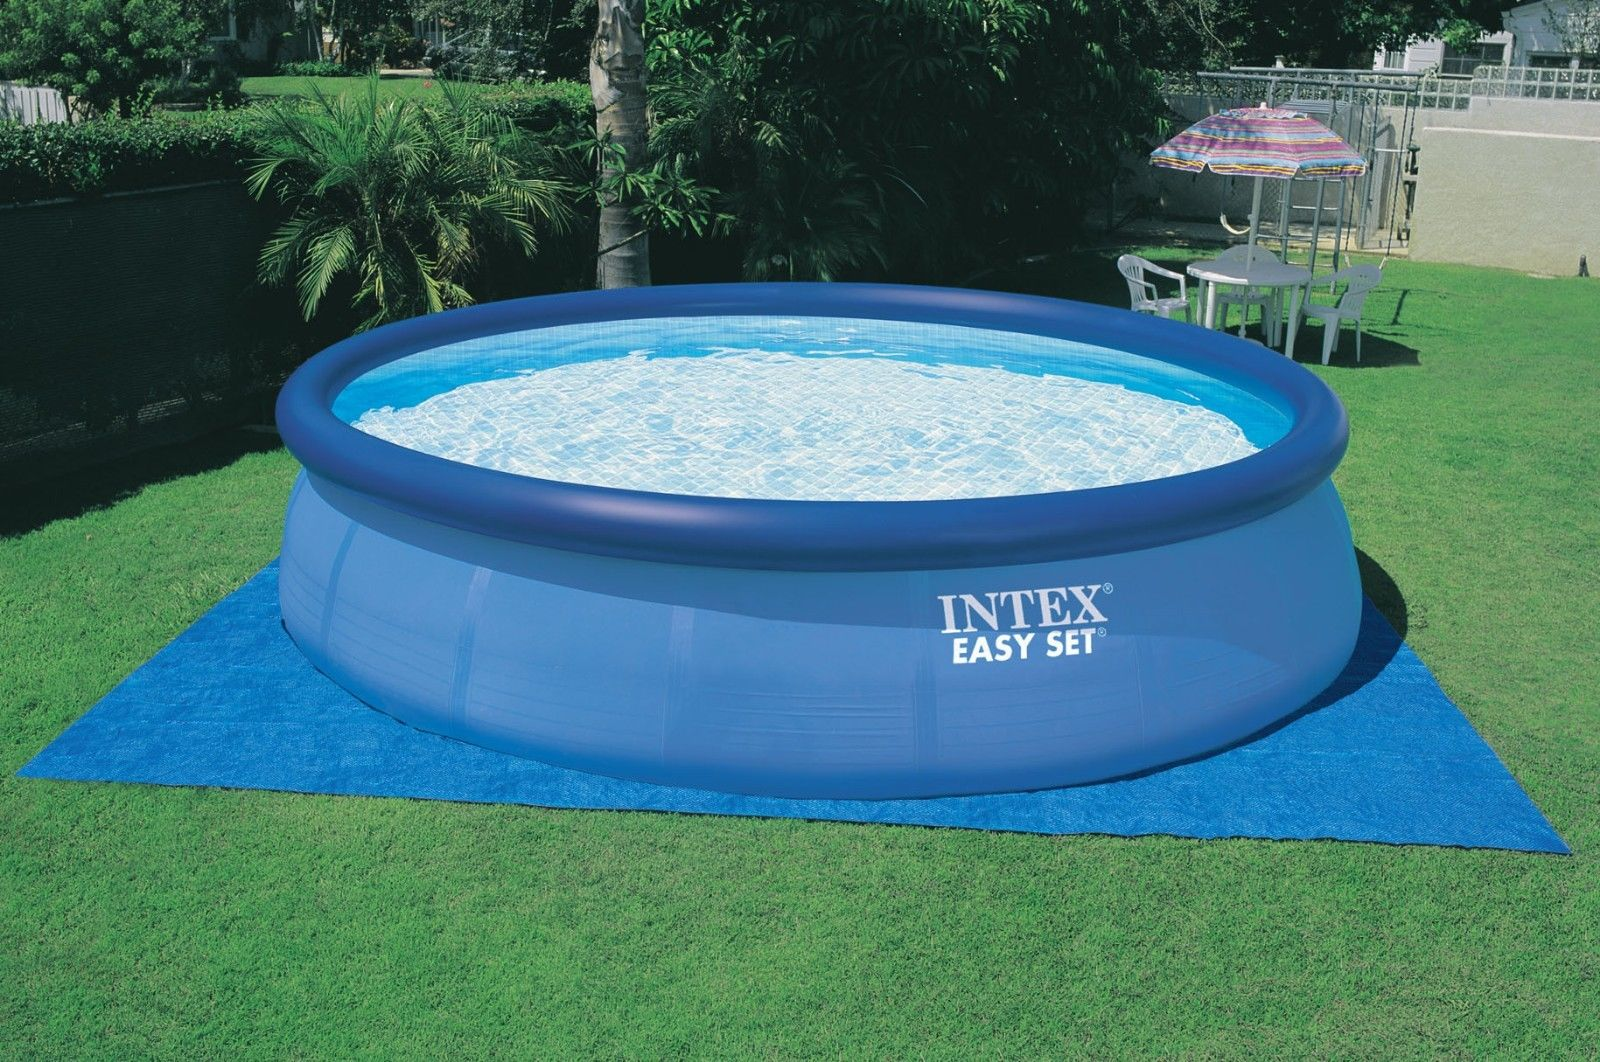 Intex 15 X 42 Easy Set Above Ground Swimming Pool Package 1000 Gph Pump 28165eh Ebay